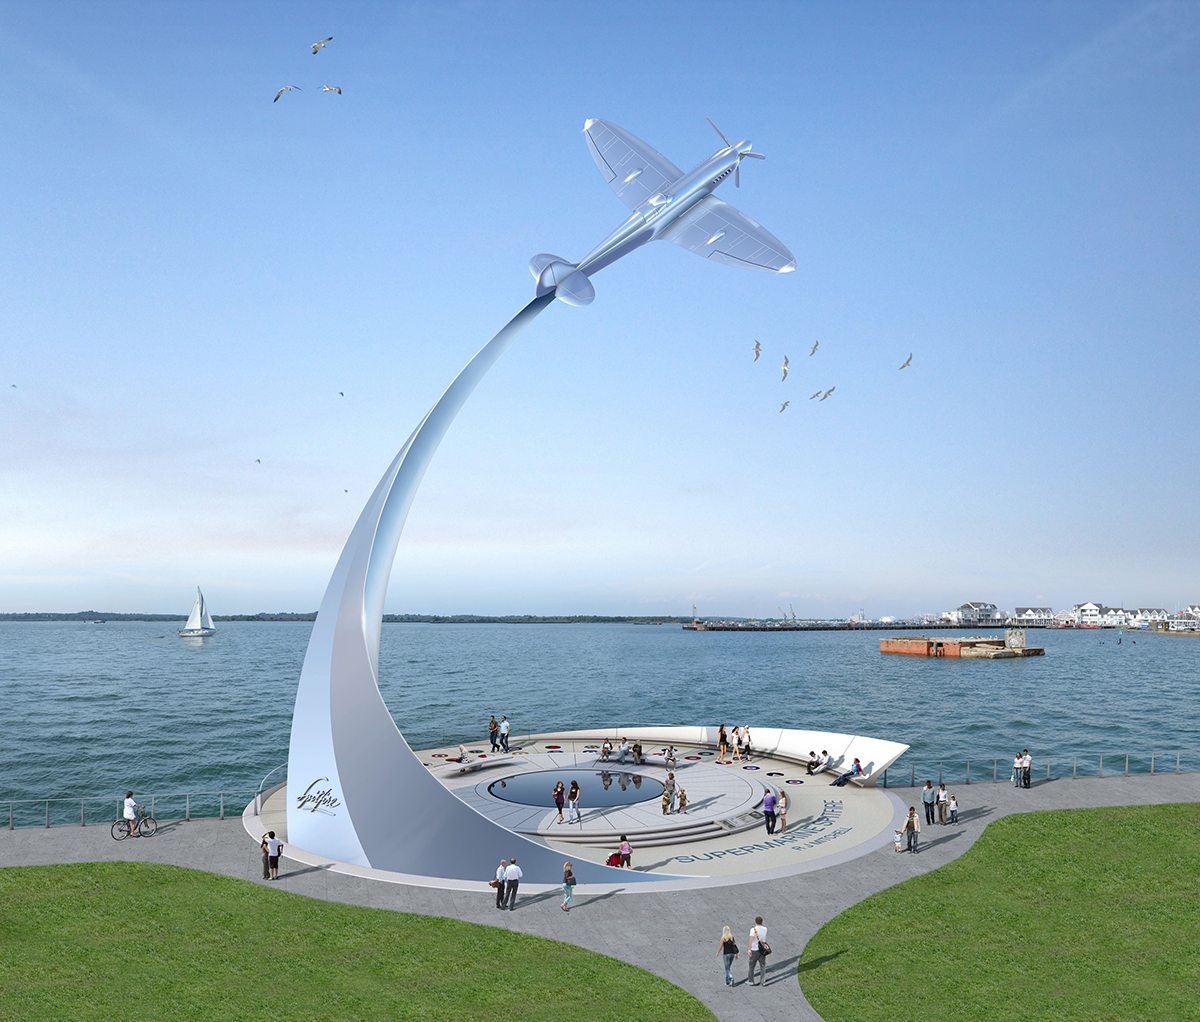 New location for city's Spitfire tribute